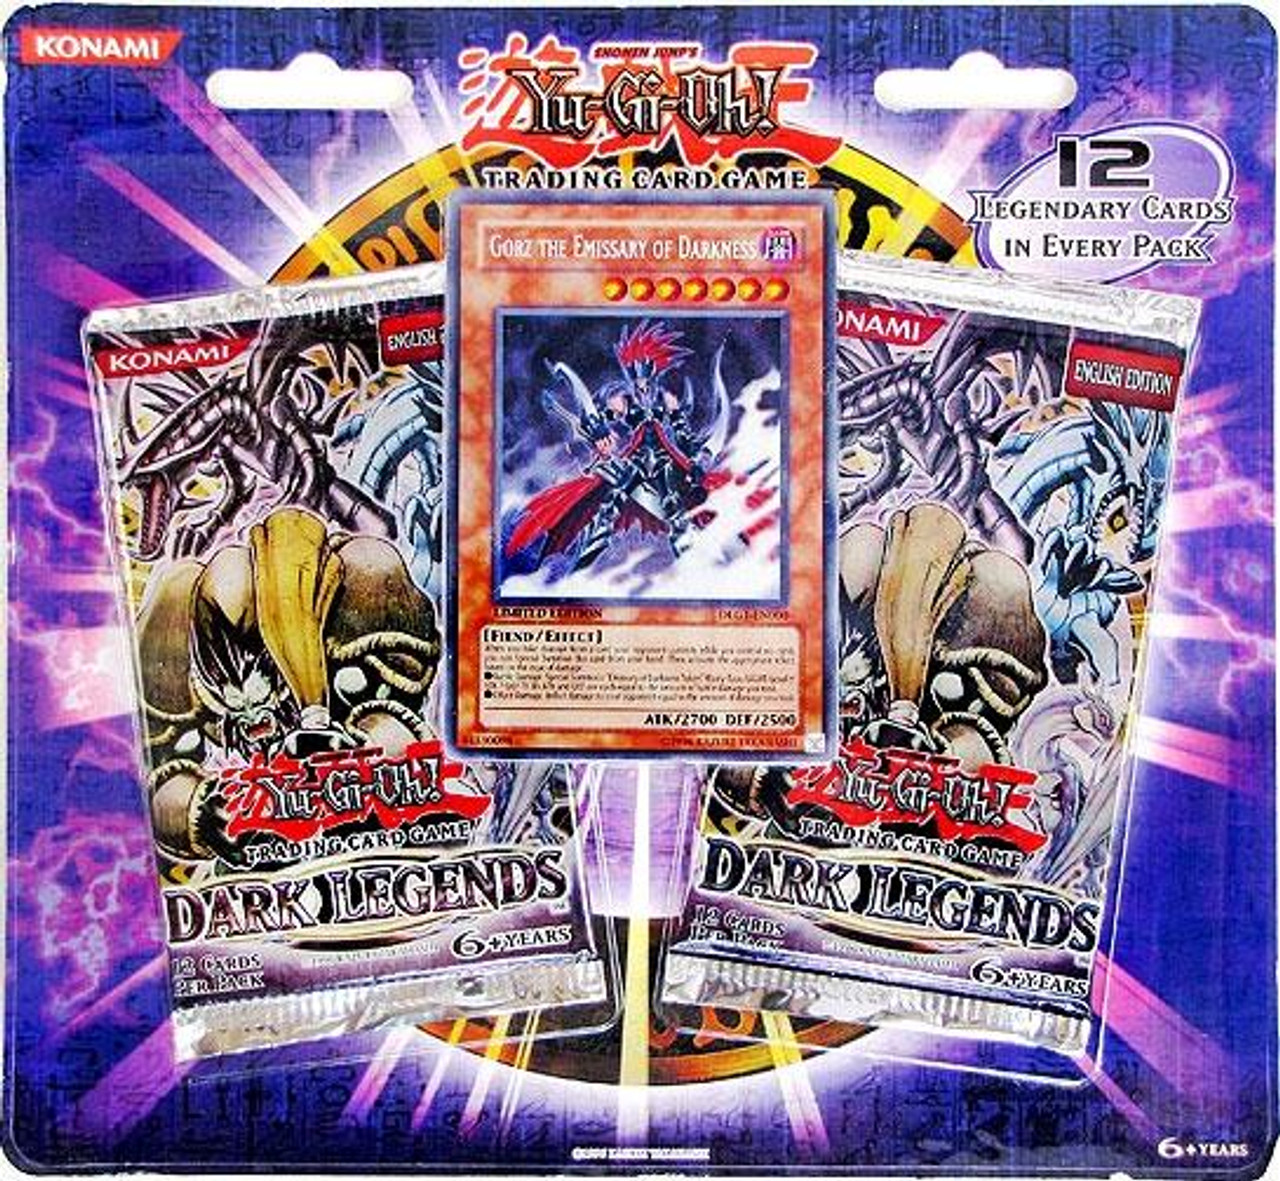 YuGiOh Dark Legends Special Edition Pack [Gorz Emissary of Darkness Card & 2 Dark Legends Booster Packs] [Sealed]